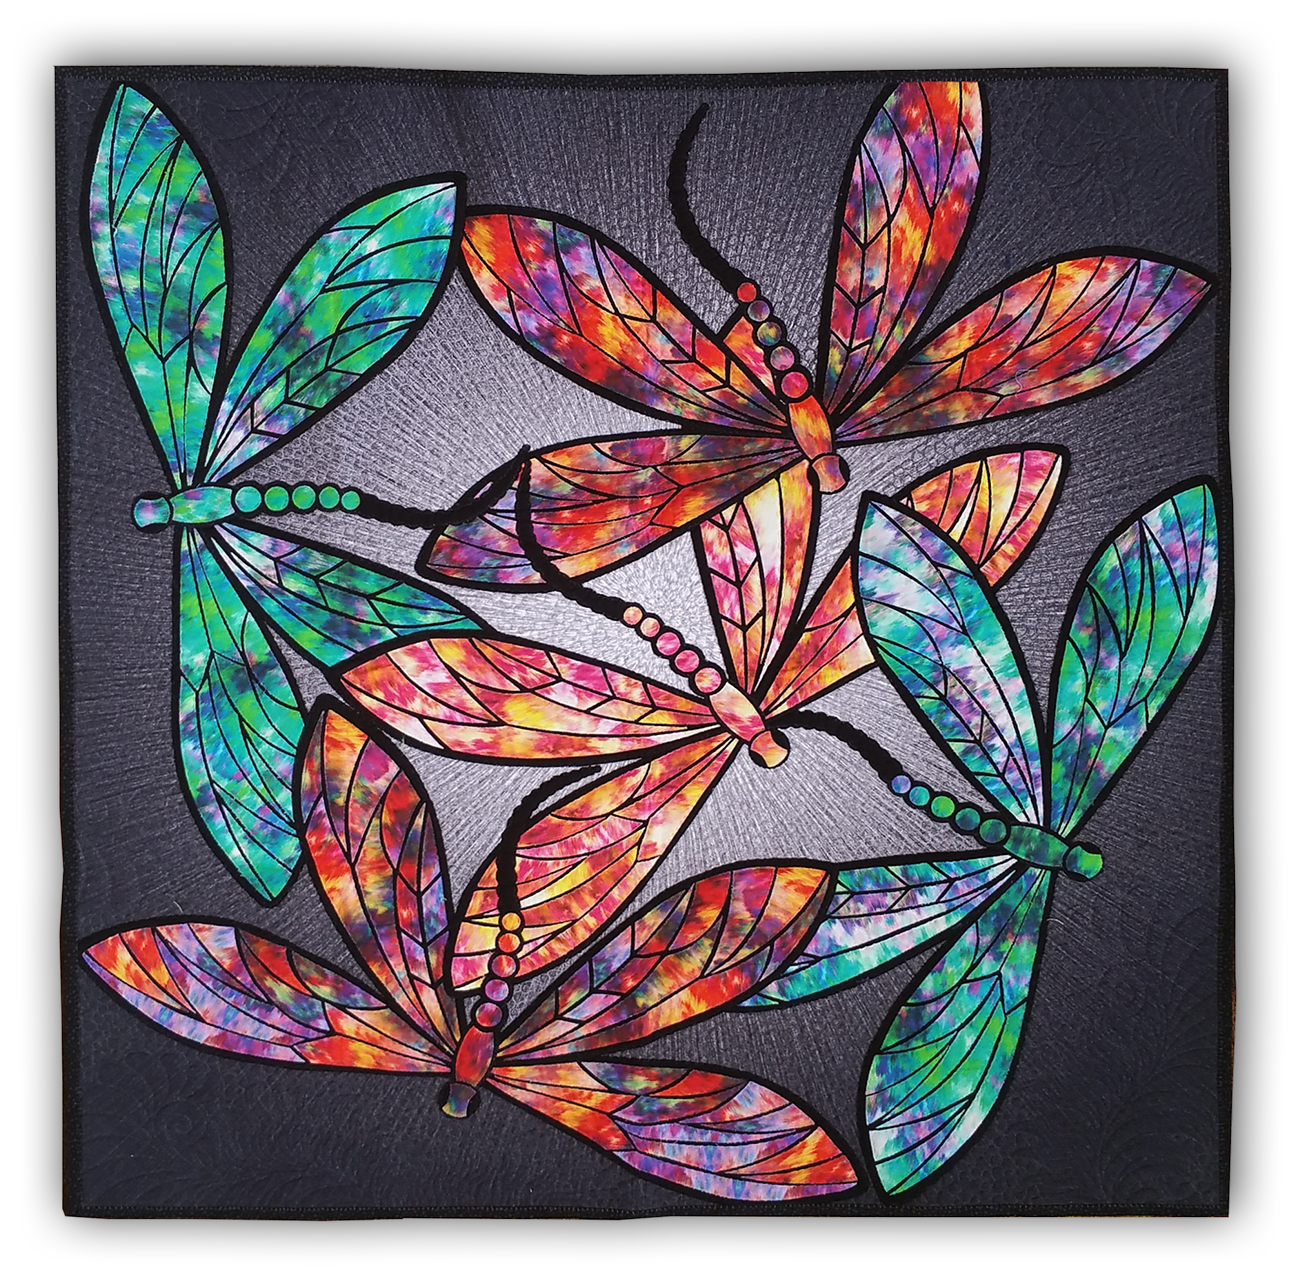 Dance of the Dragonfly Quilt Kit Includes Backing Panel Fabric and Pattern Sapphire Blue Colourway